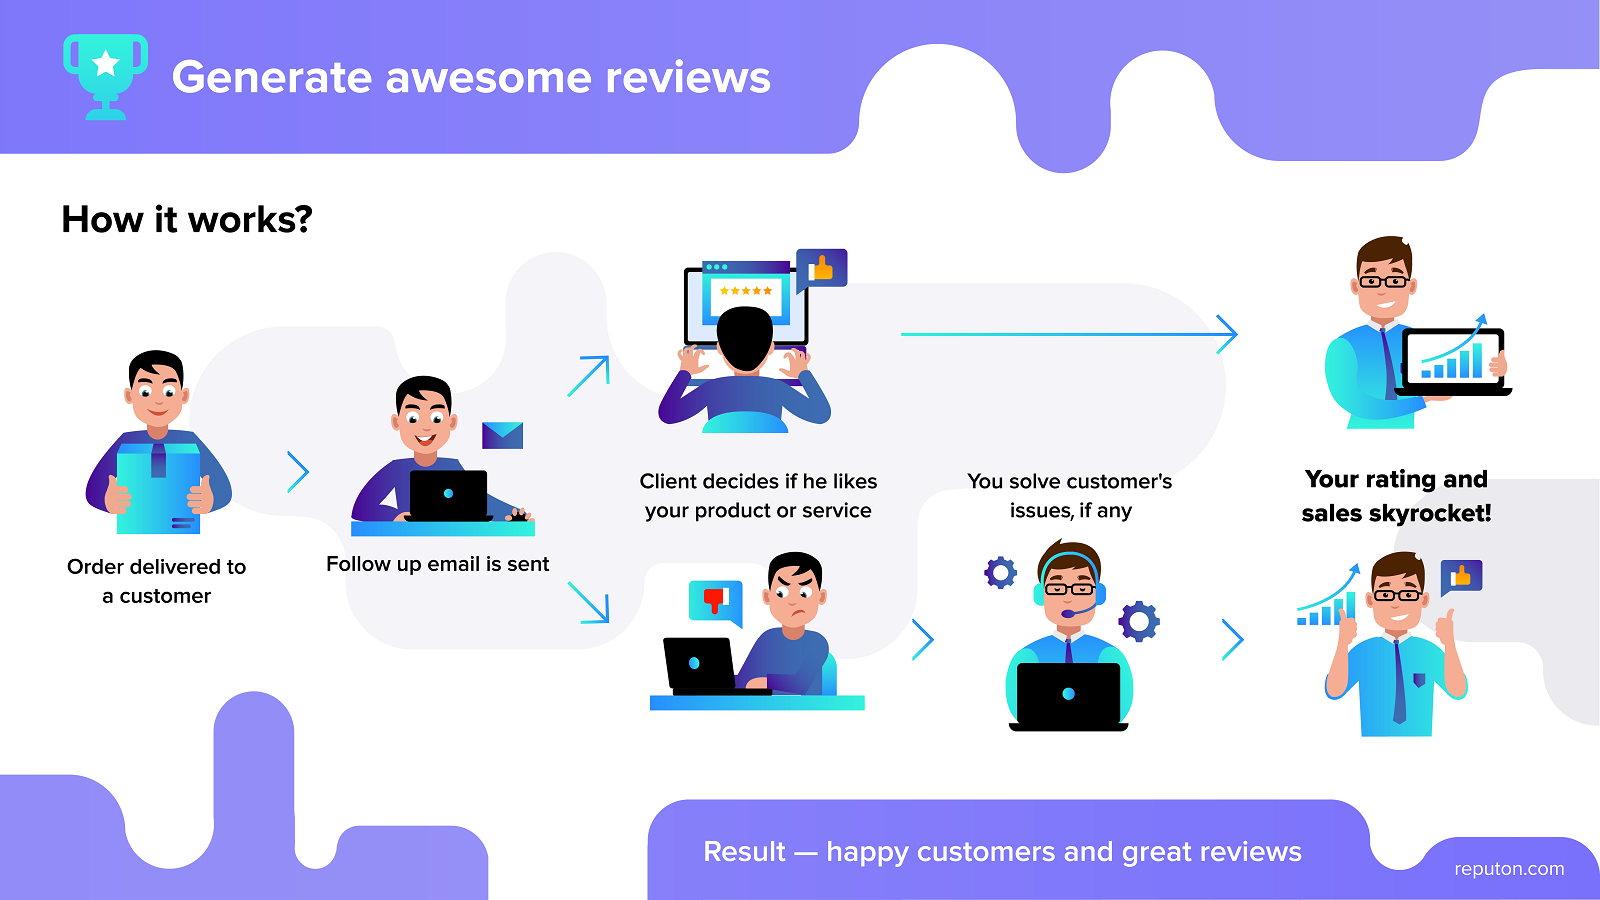 Reputon Shopify reviews how it works